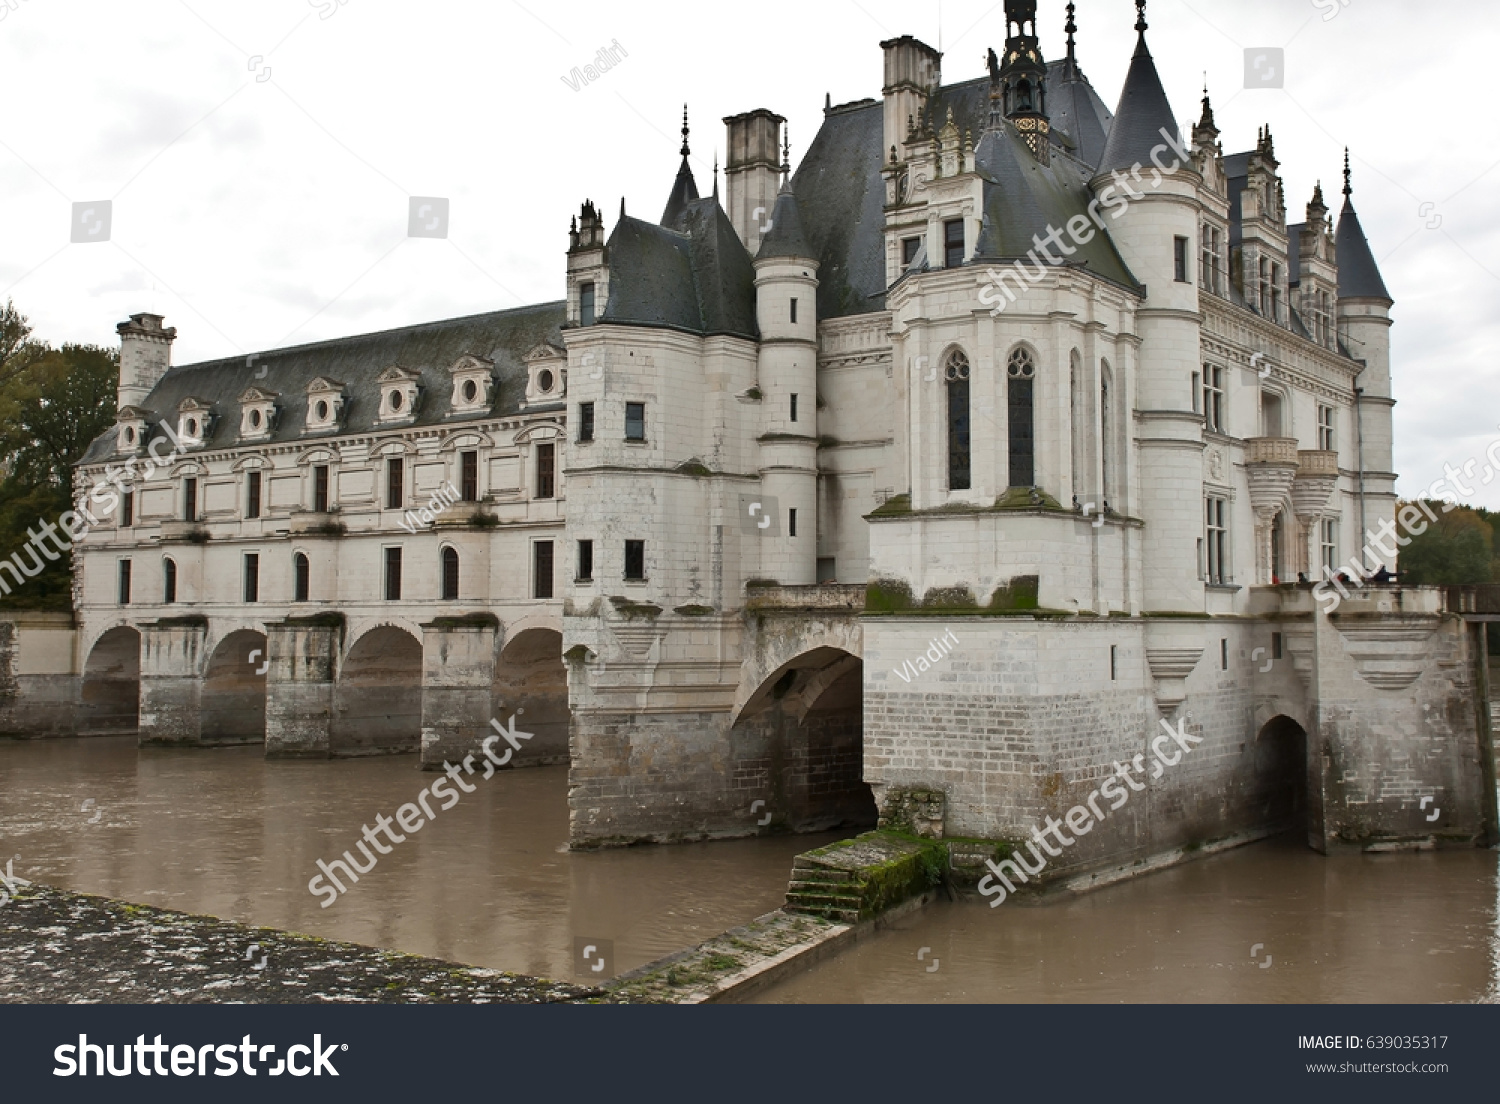 Chateau de chenonceau on the river cher france built in 1514 1522